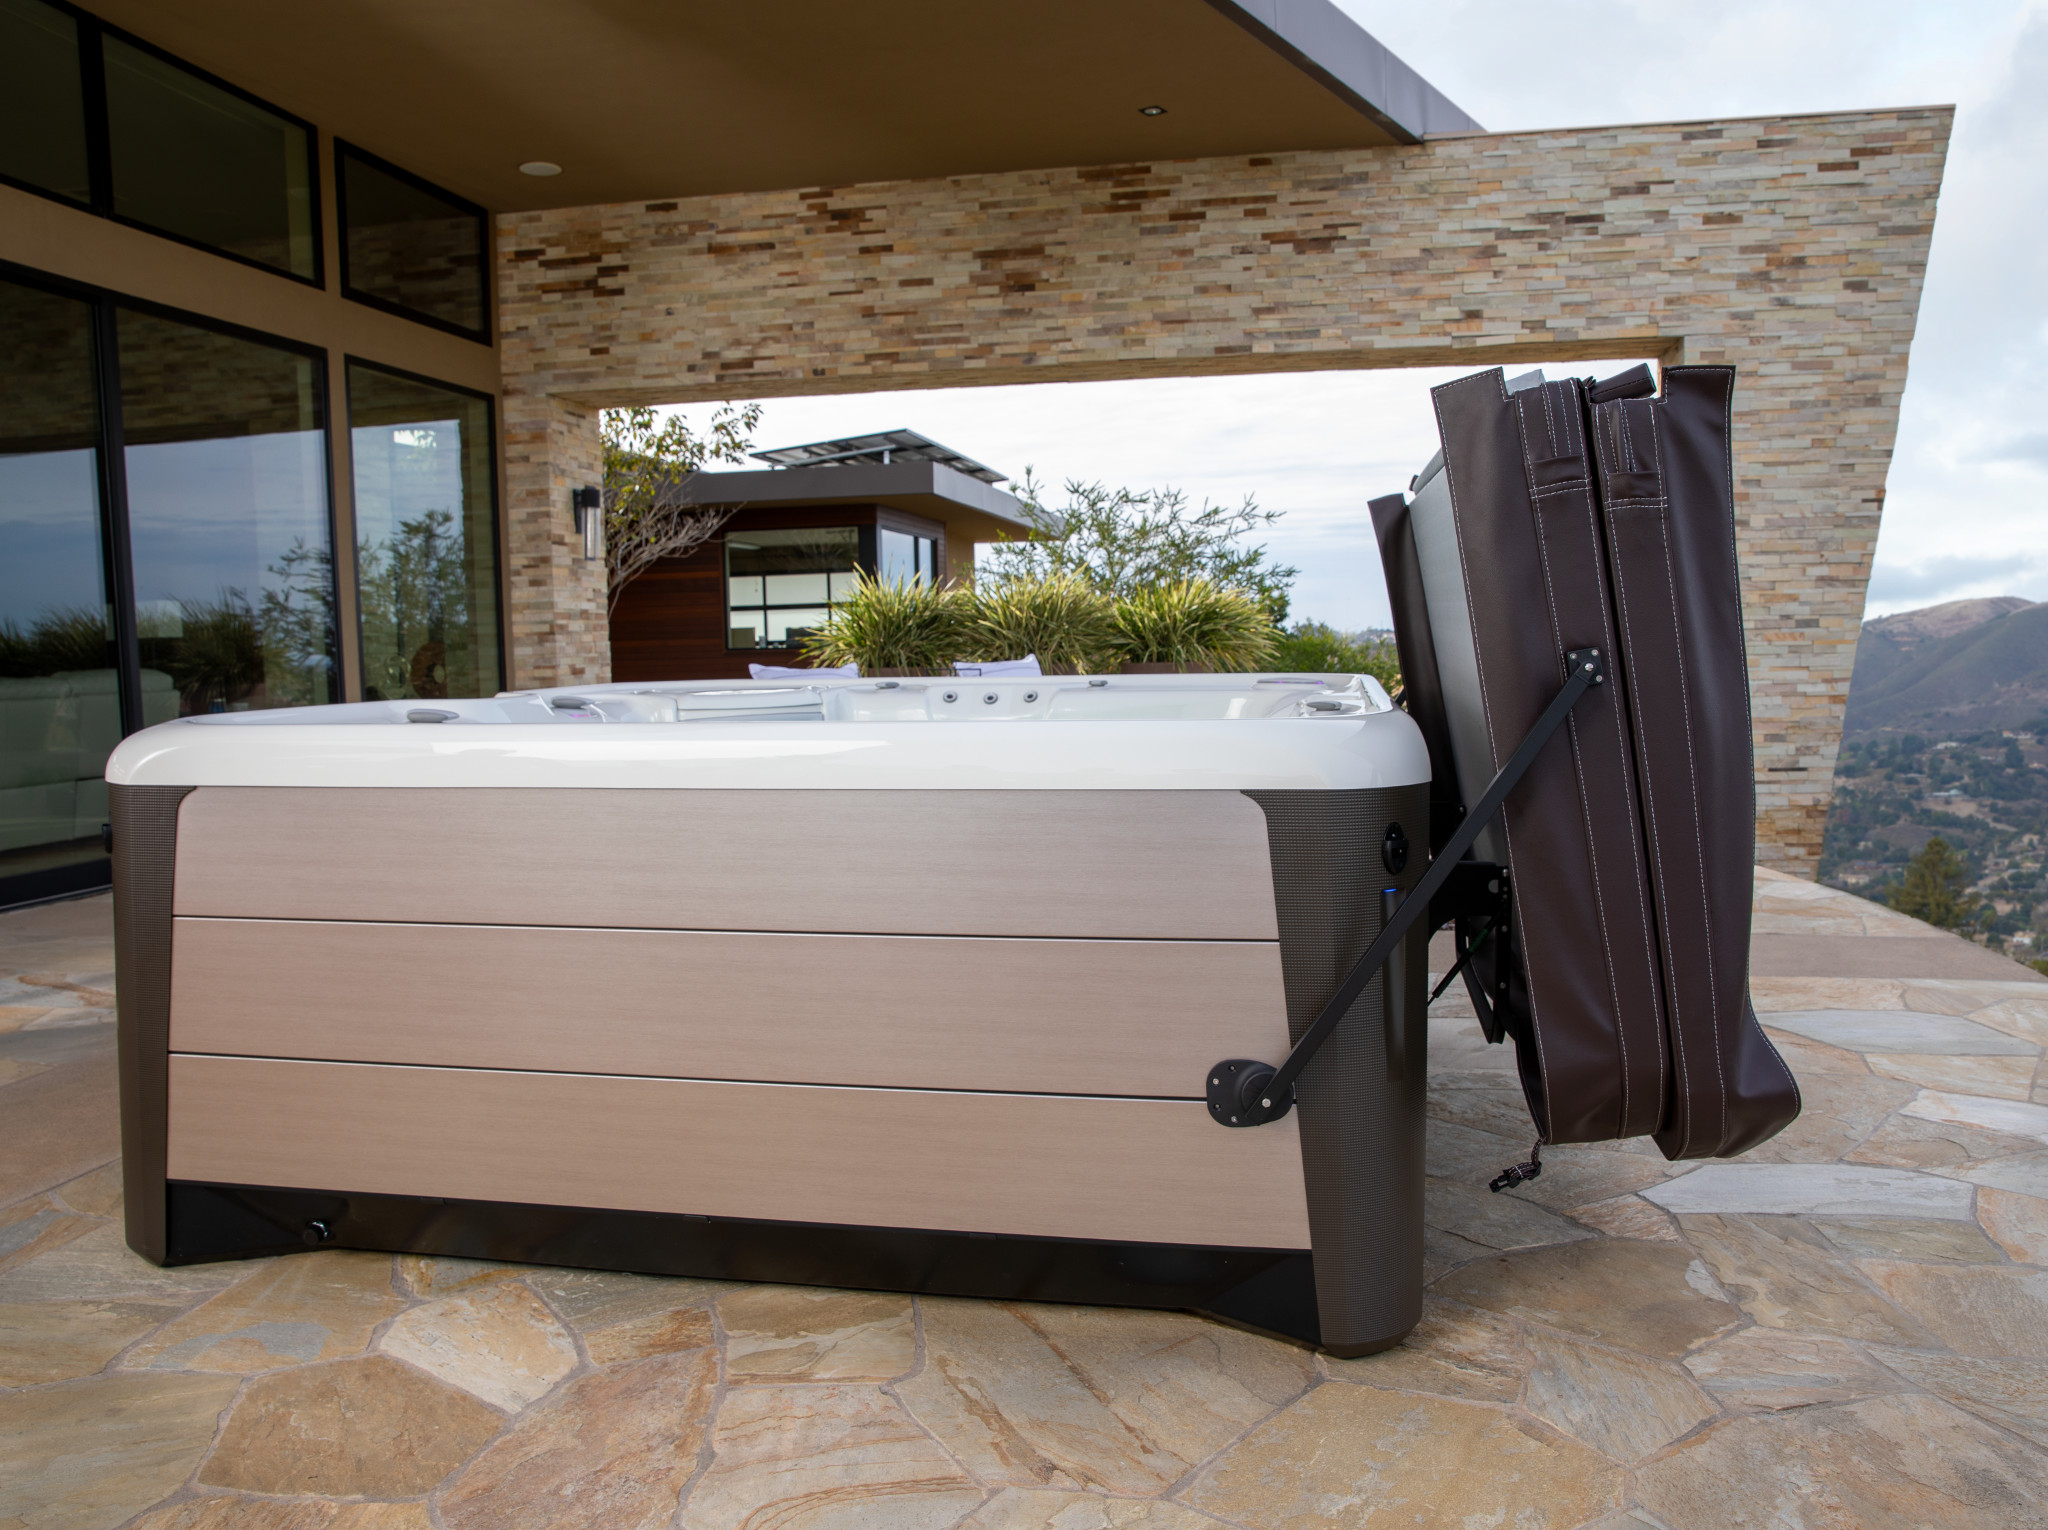 How to Find the Most Reliable Hot Tubs